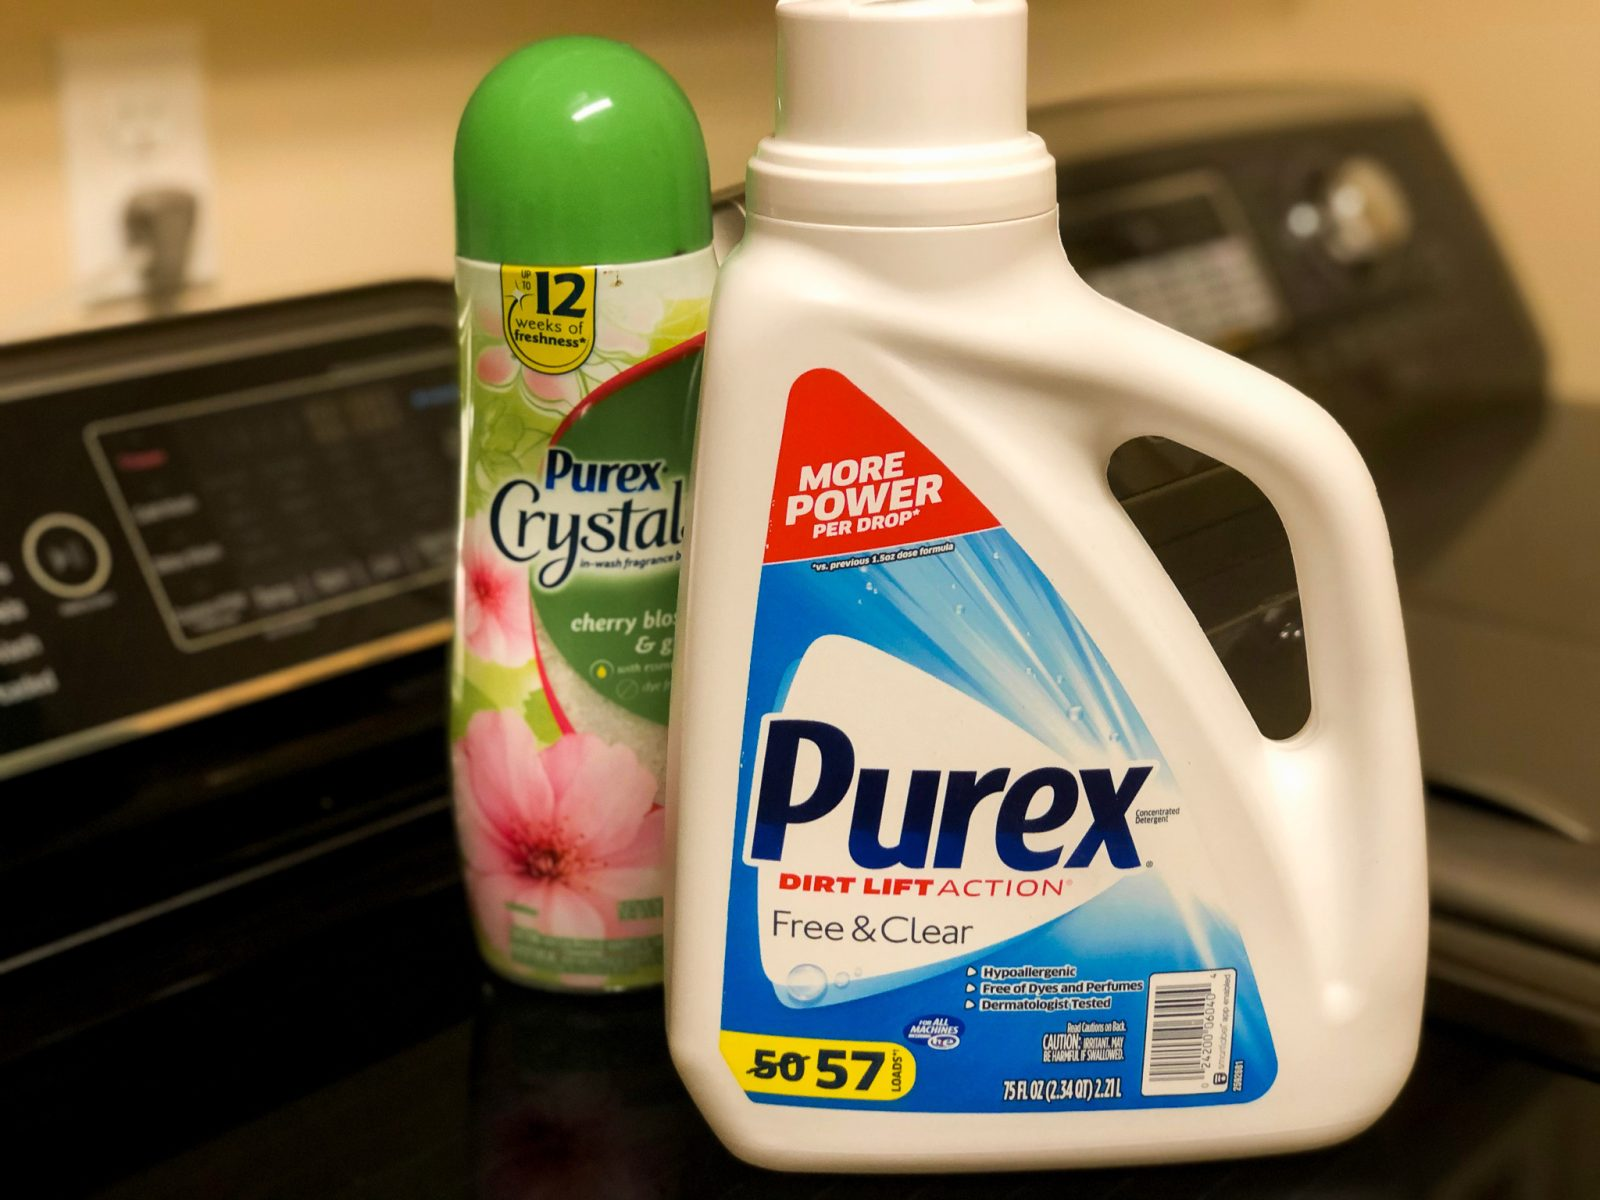 Purex Laundry Detergent As Low As $2 At Publix on I Heart Publix 2